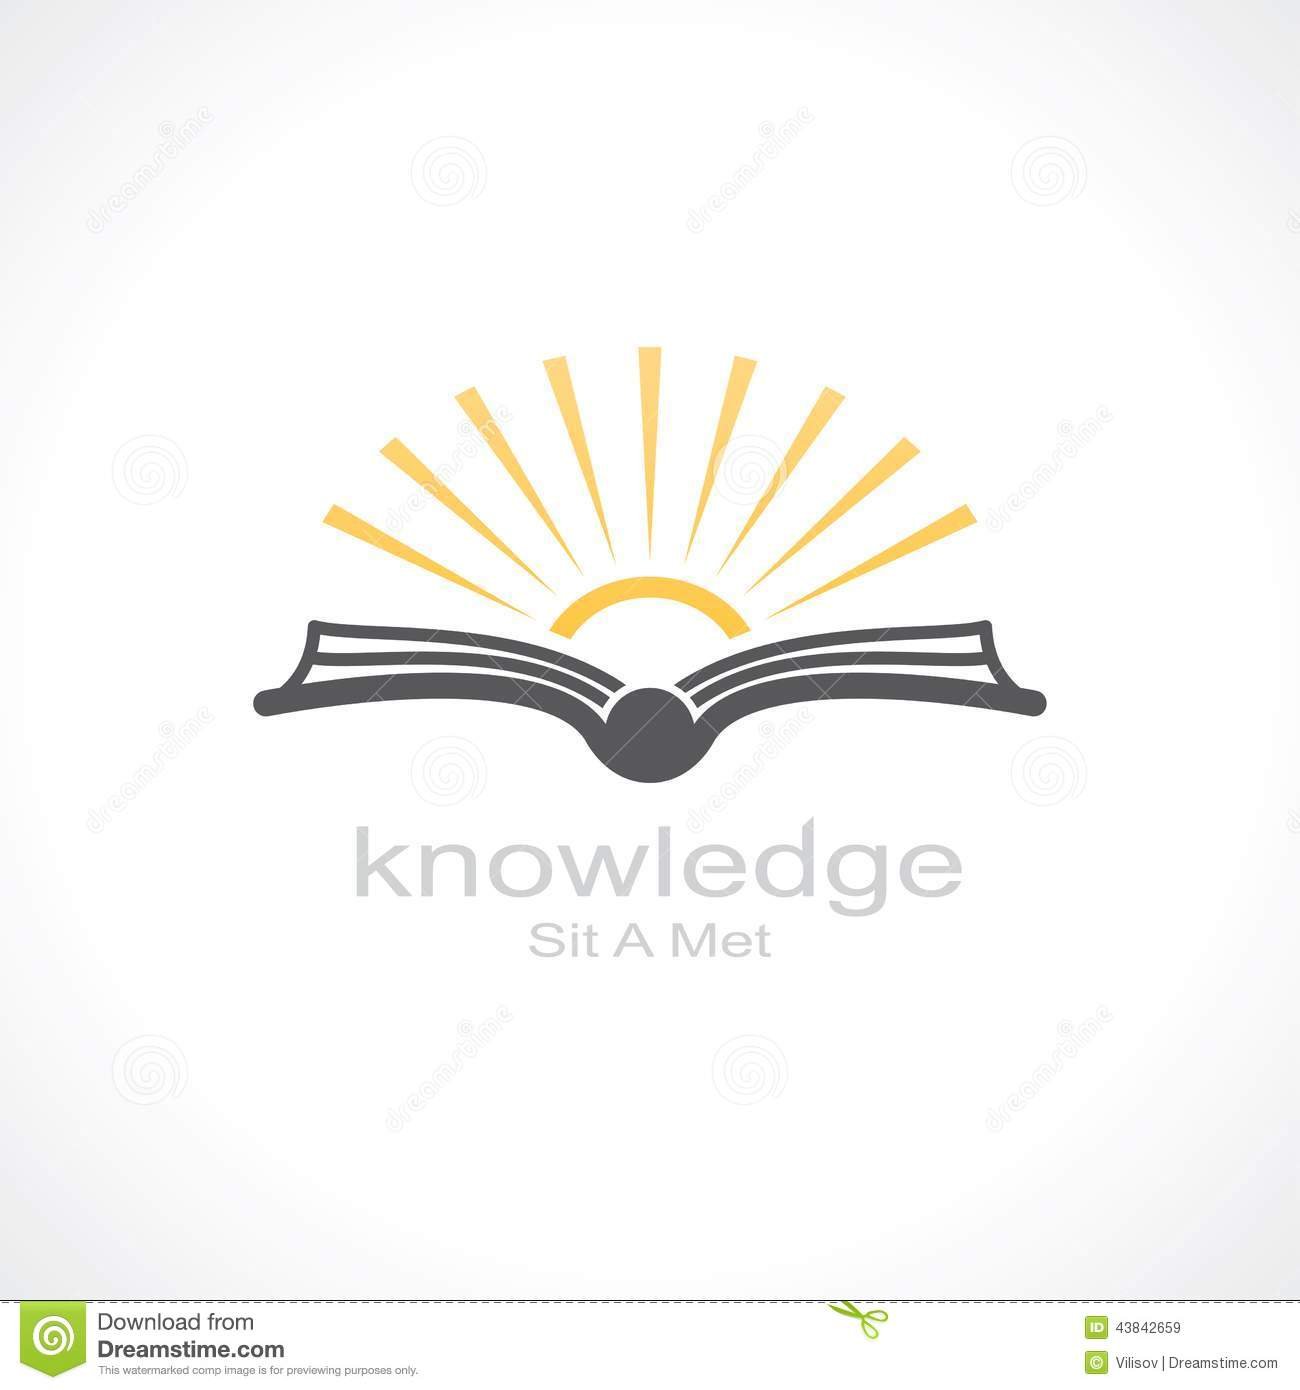 15 knowledge icon vector images psychology brain tree